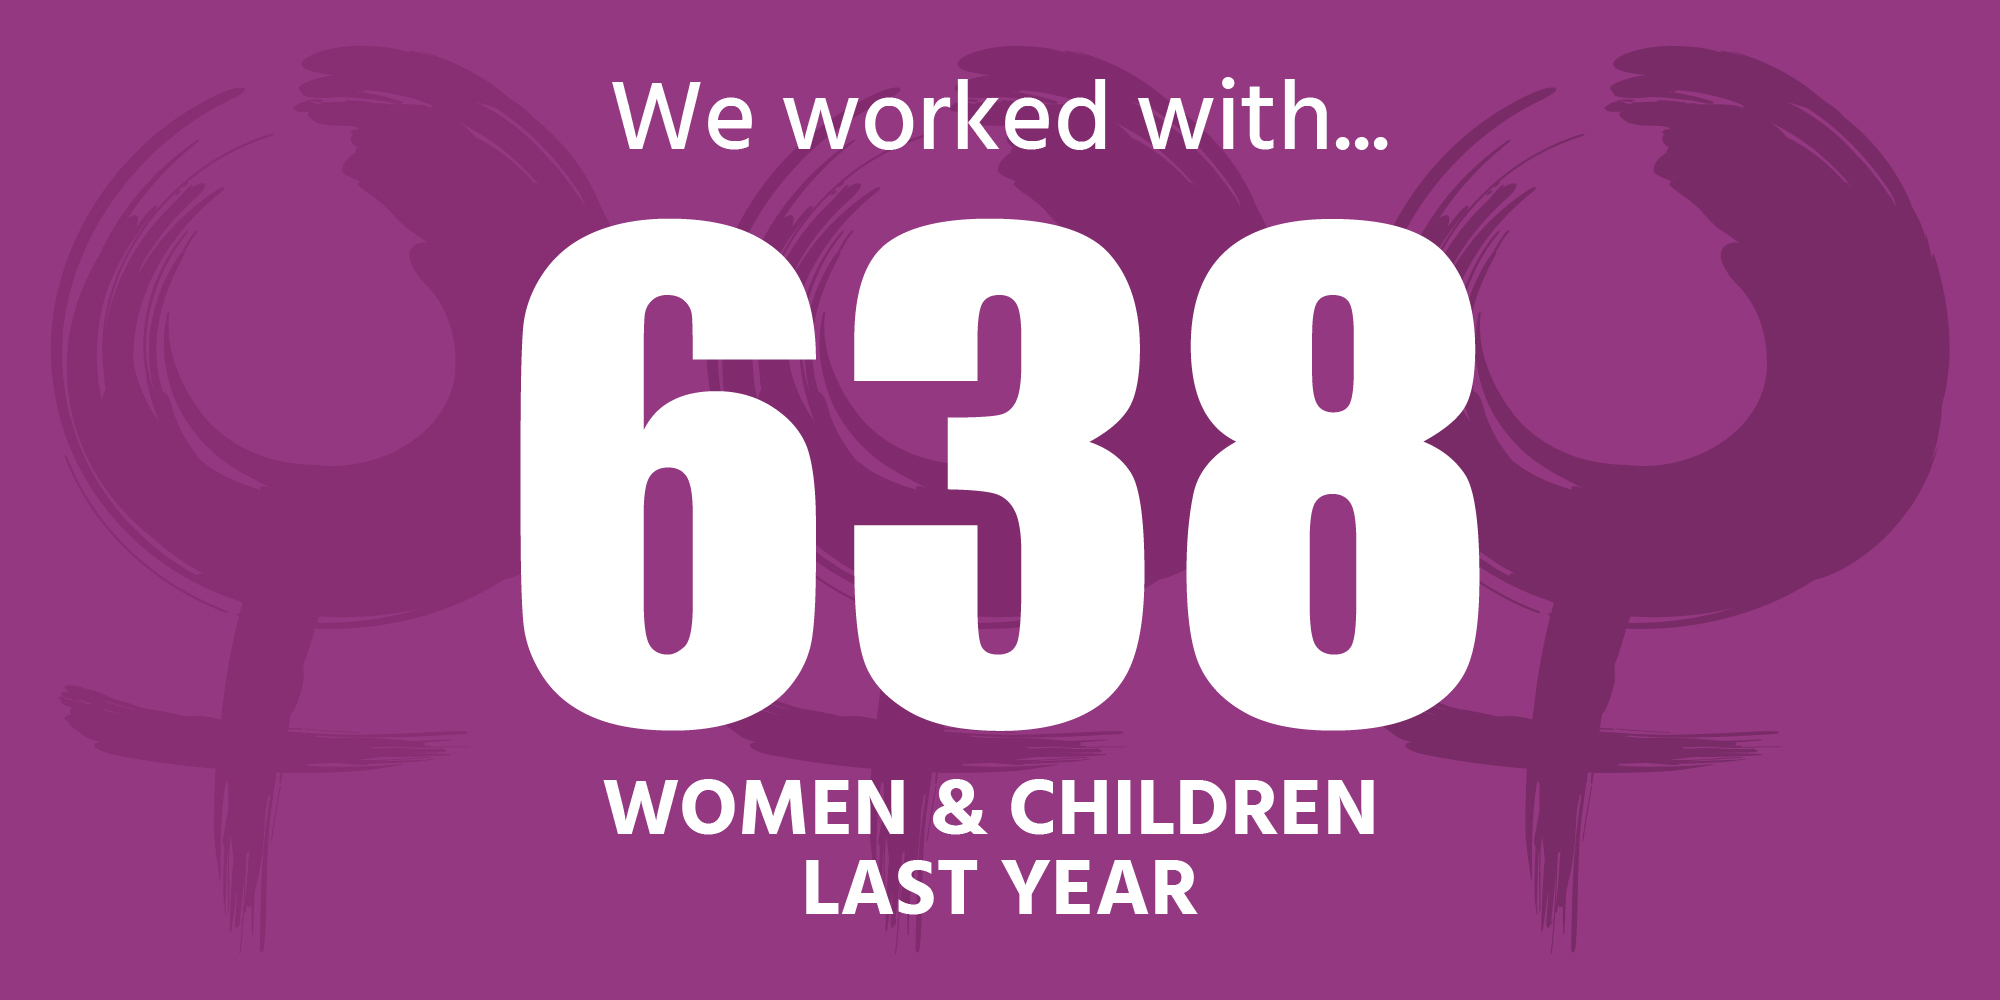 southampton-womens-aid-infographic-about-us-1.jpg